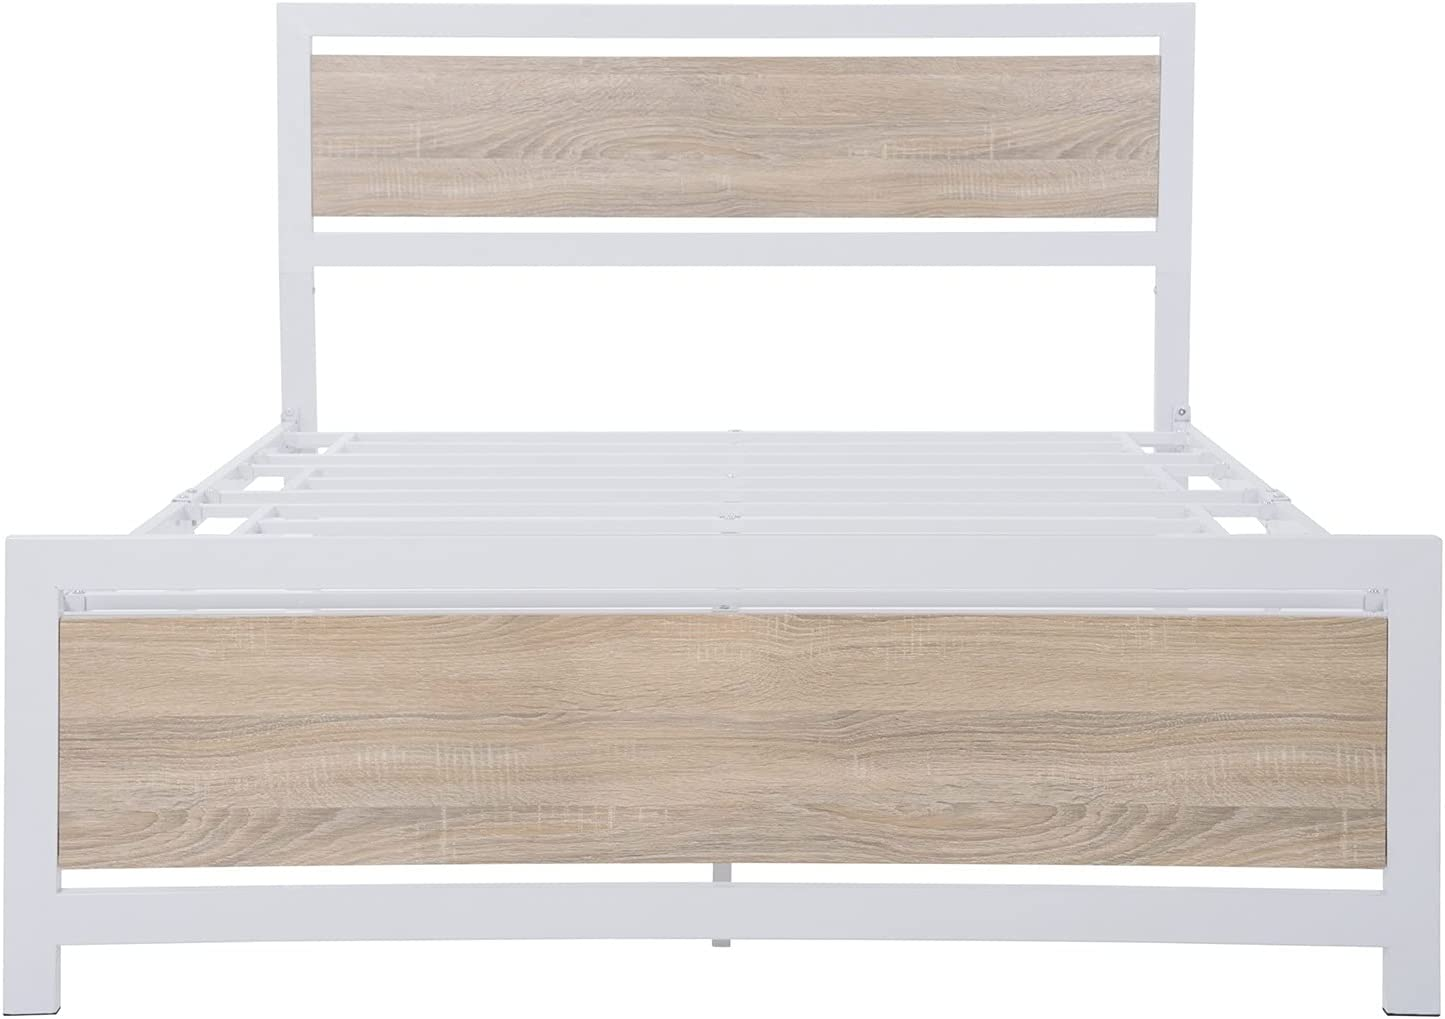 U D Cheap Sales of SALE items from new works bargain Double Bed Available in Black and White Metal Wooden B